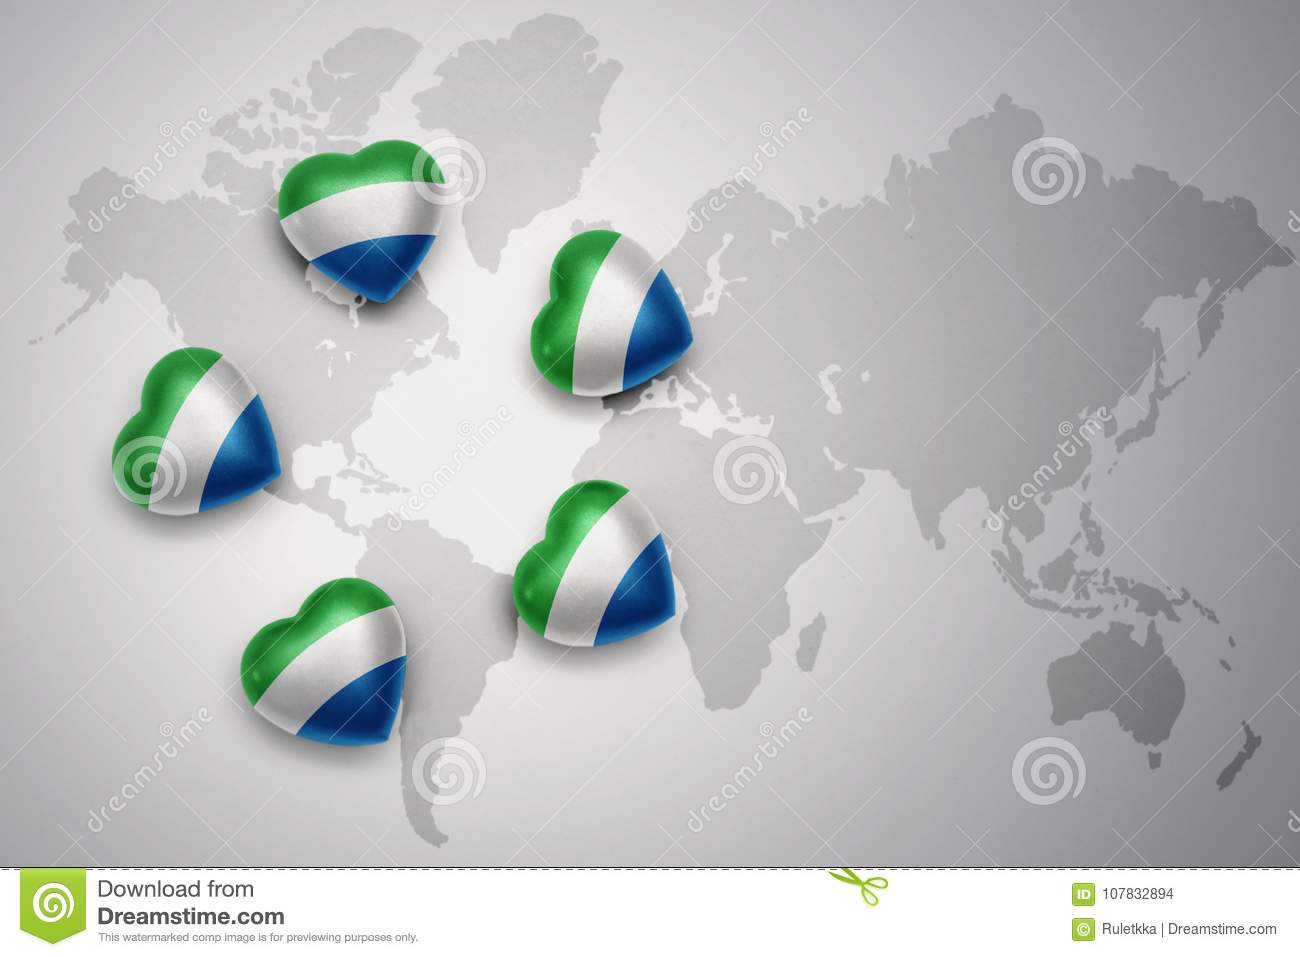 Five Hearts With National Flag Of Sierra Leone On A World Map